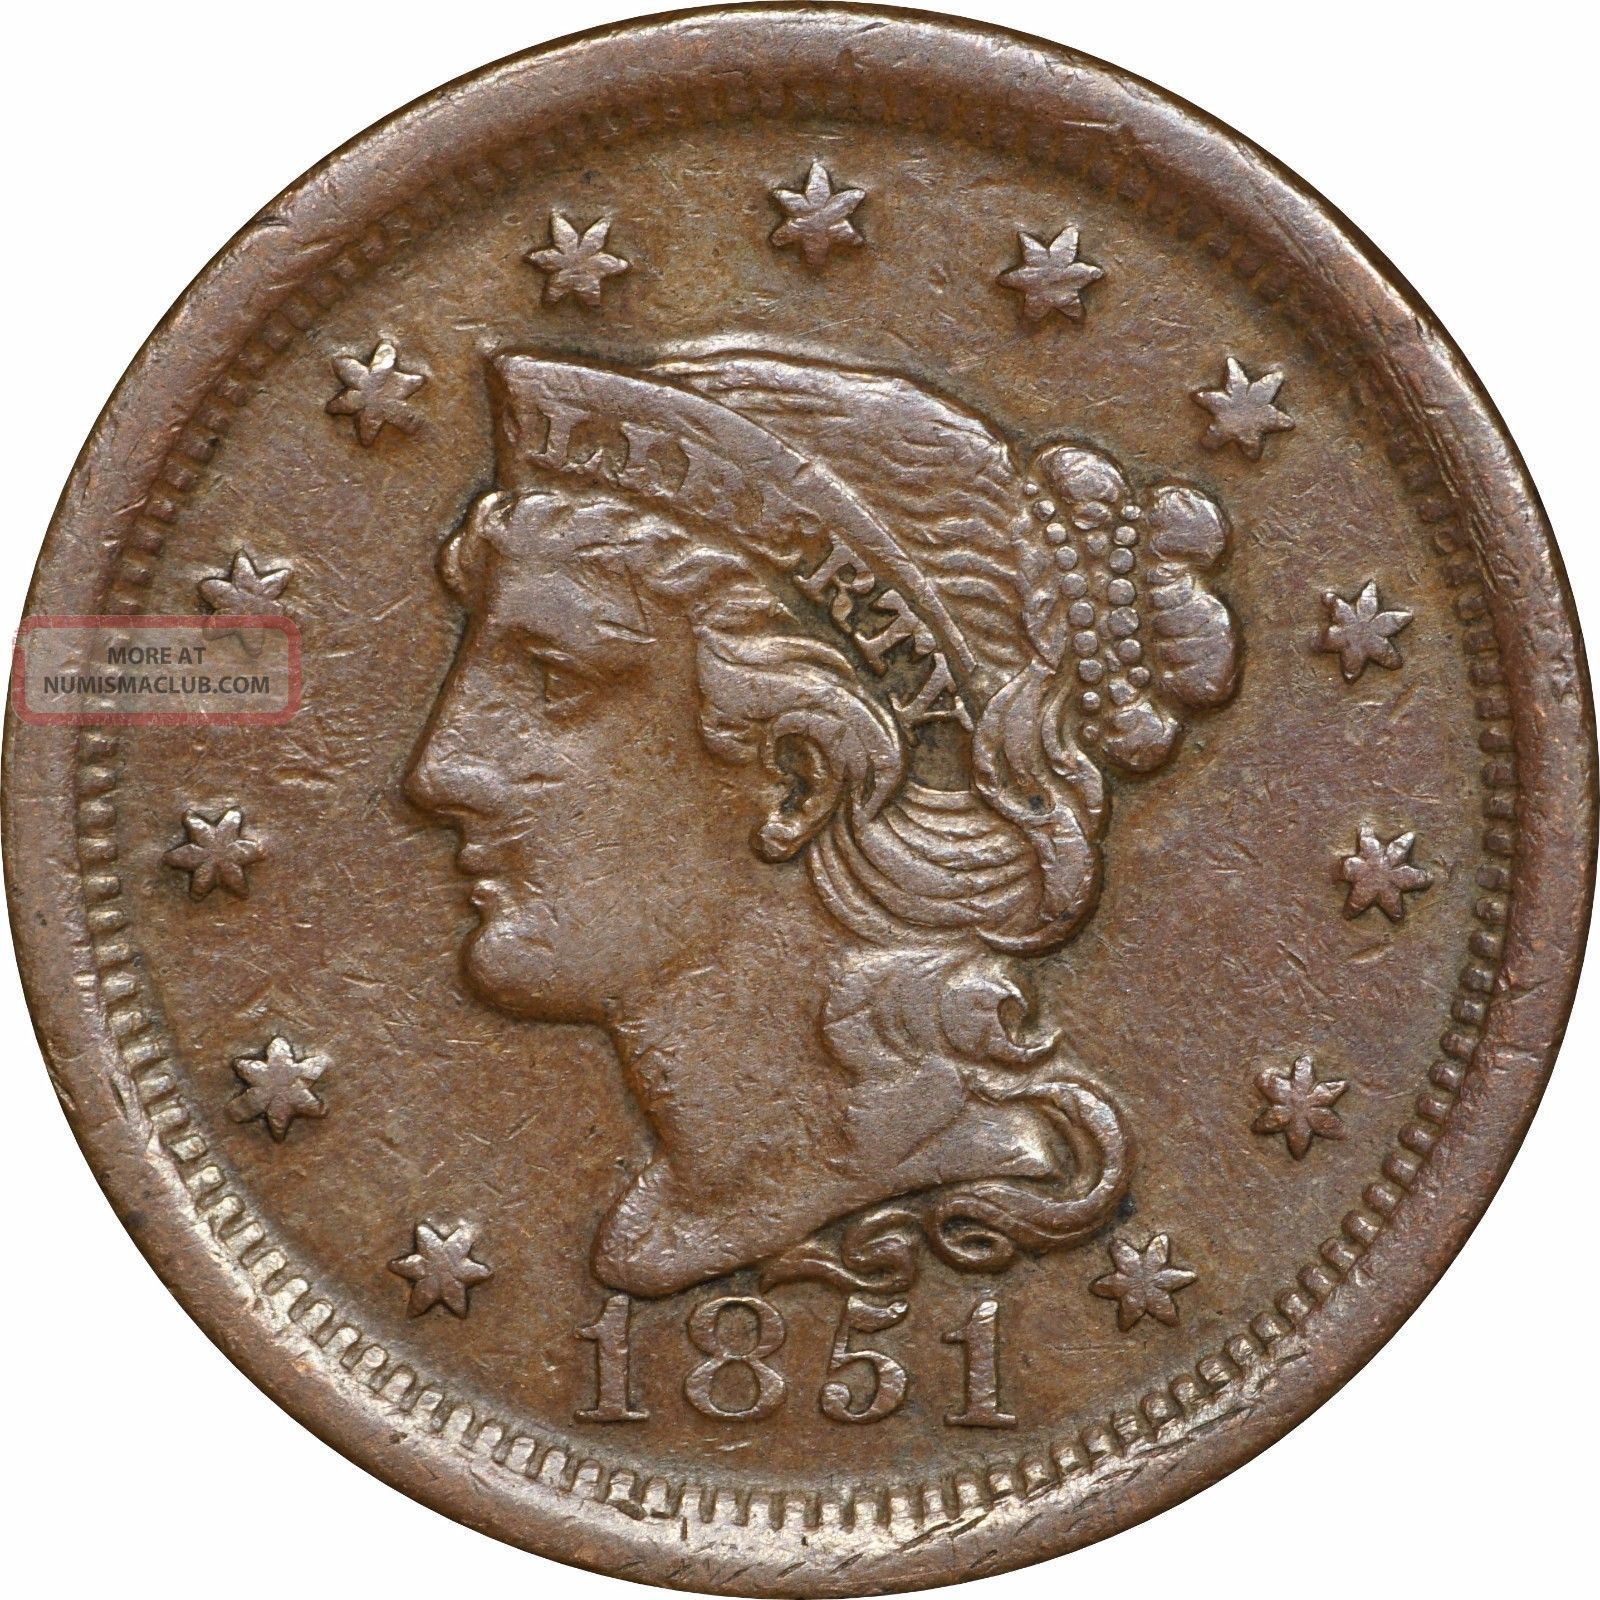 1851 Braided Hair Large Cent,  Glossy Chocolate Brown Planchet,  Vf To Xf Large Cents photo